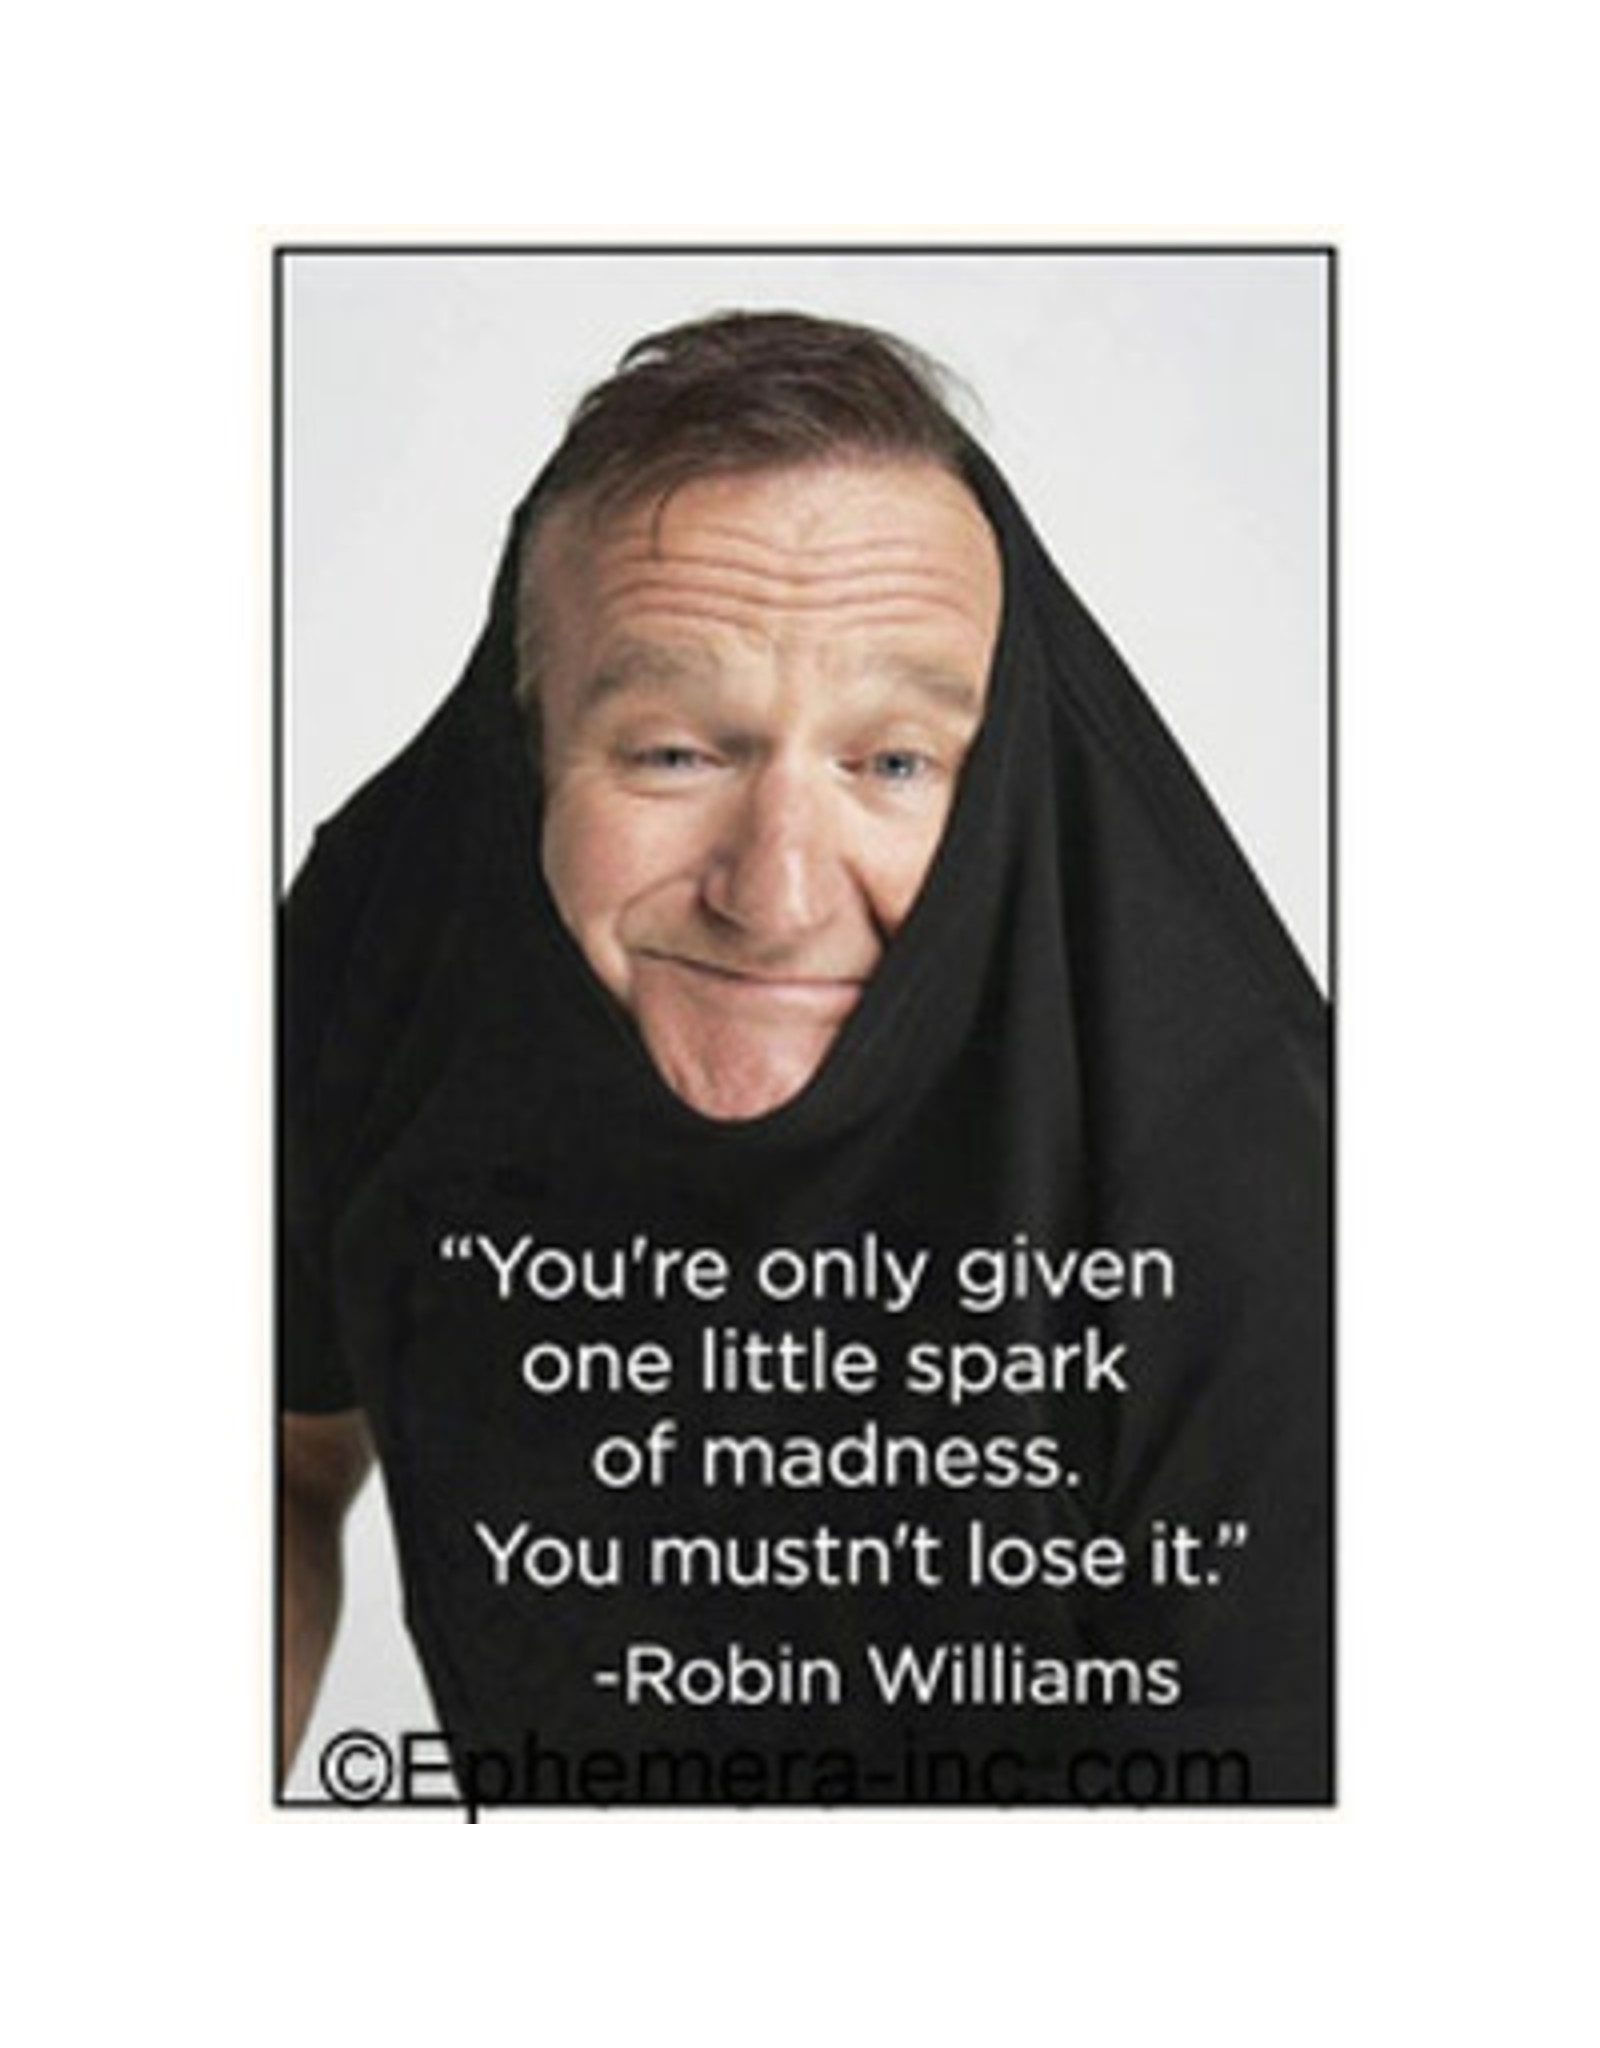 Magnet - You're Only Given One Little Spark Of Madness. You Mustn't Lose It. (Robin Williams)